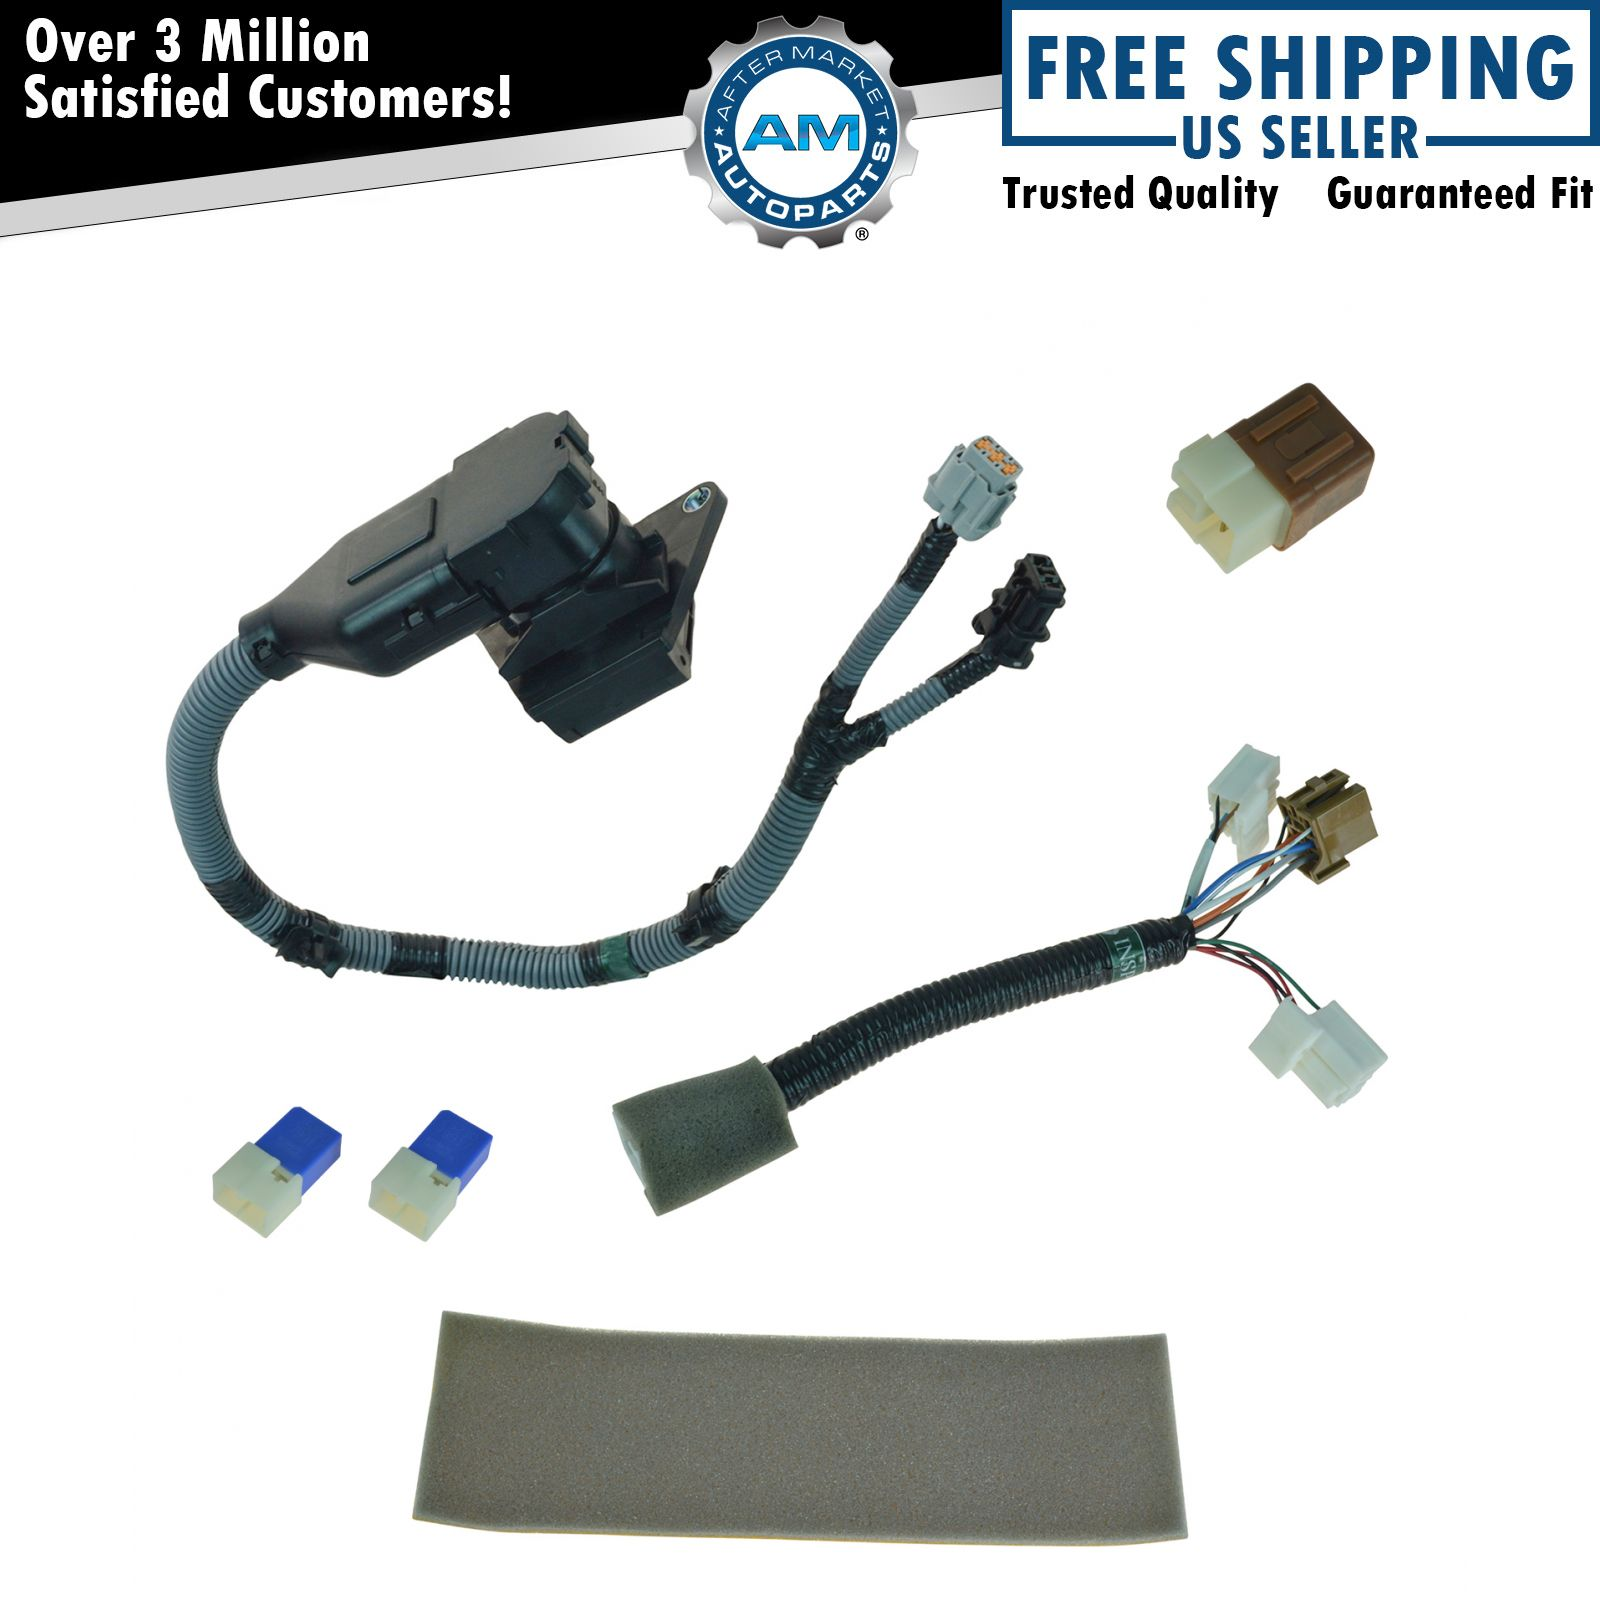 AM 345652165 oem 999t8br020 complete 7 pin plug & play tow harness kit for  at n-0.co